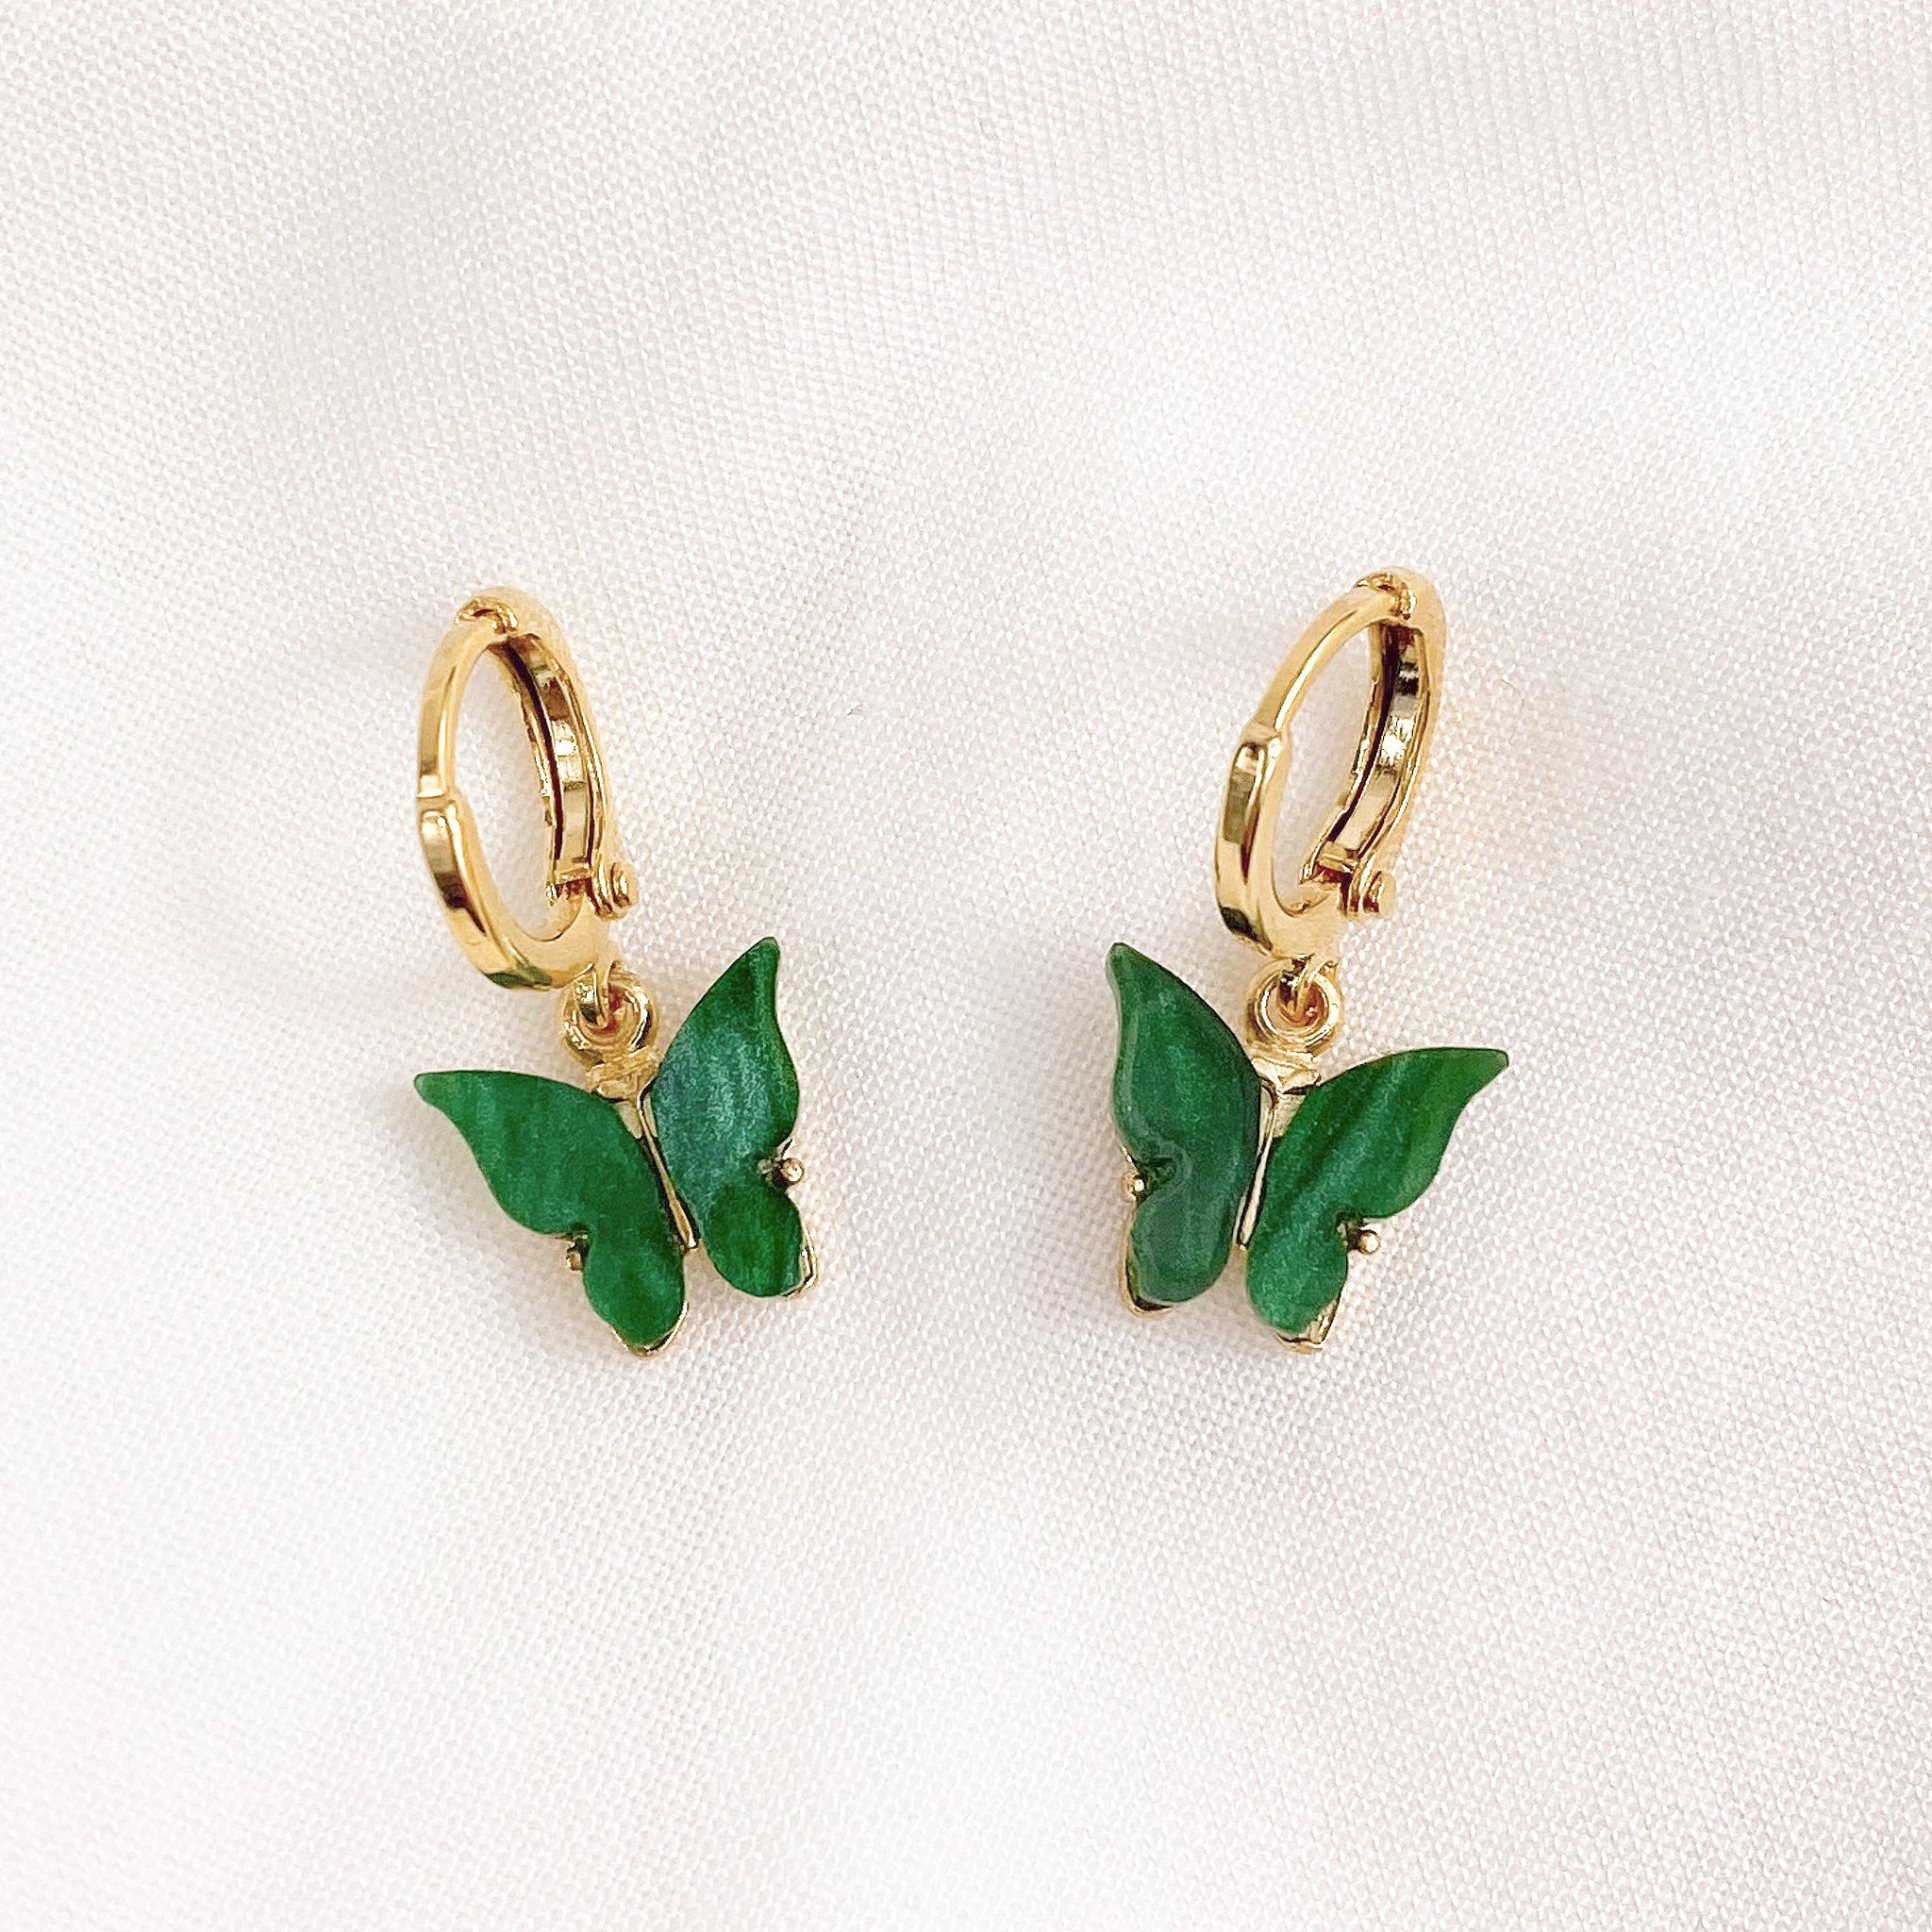 Forrest Green Butterfly Earrings